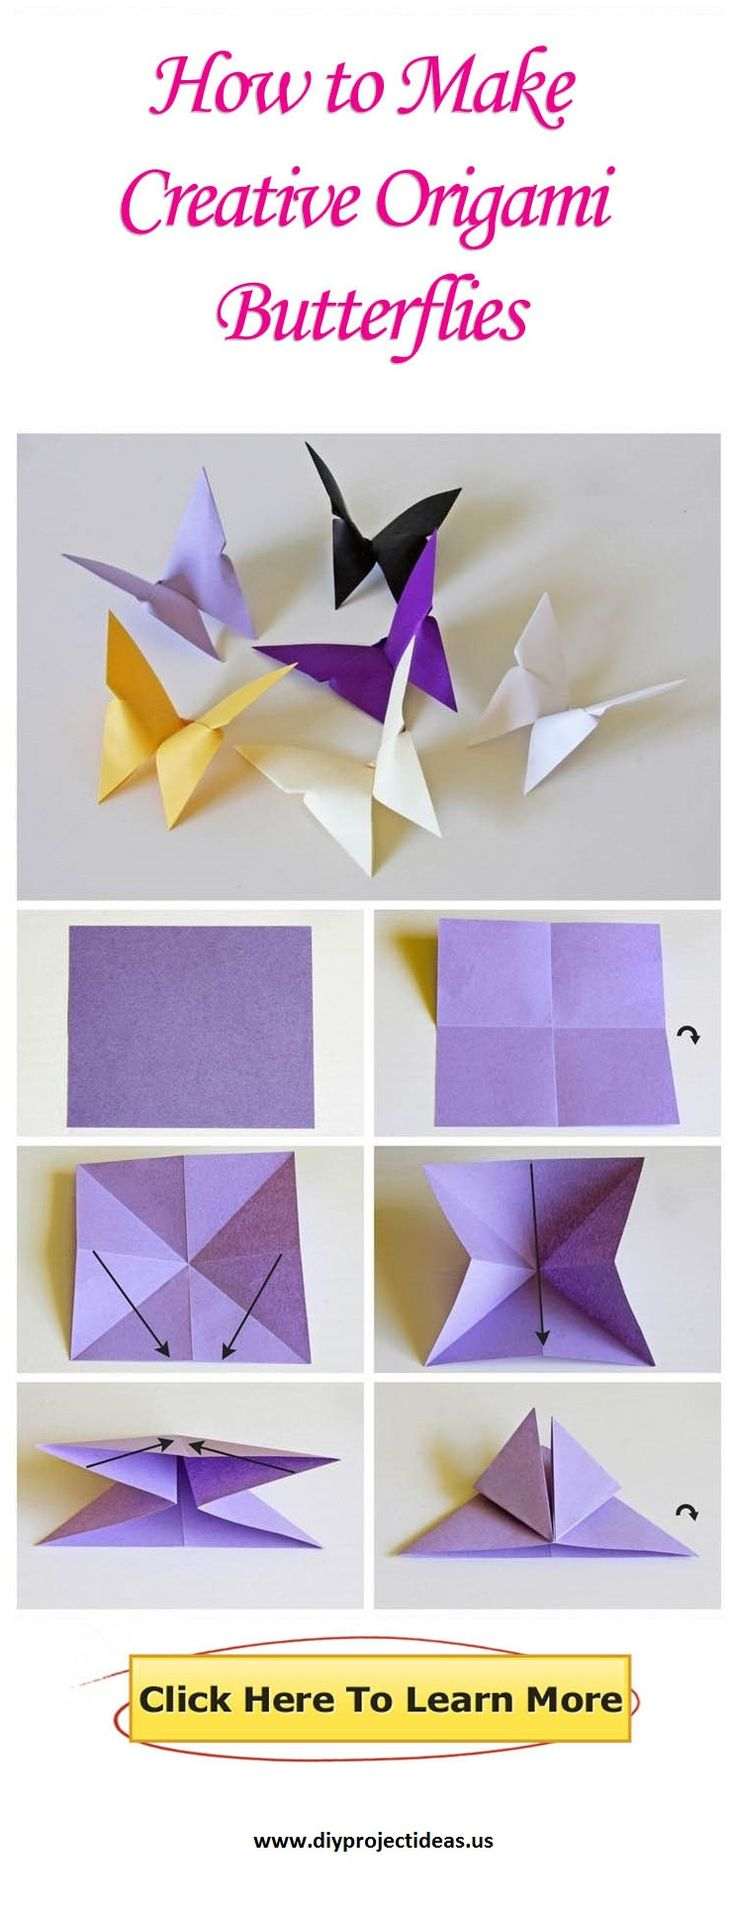 How to Make Creative Origami Butterflies